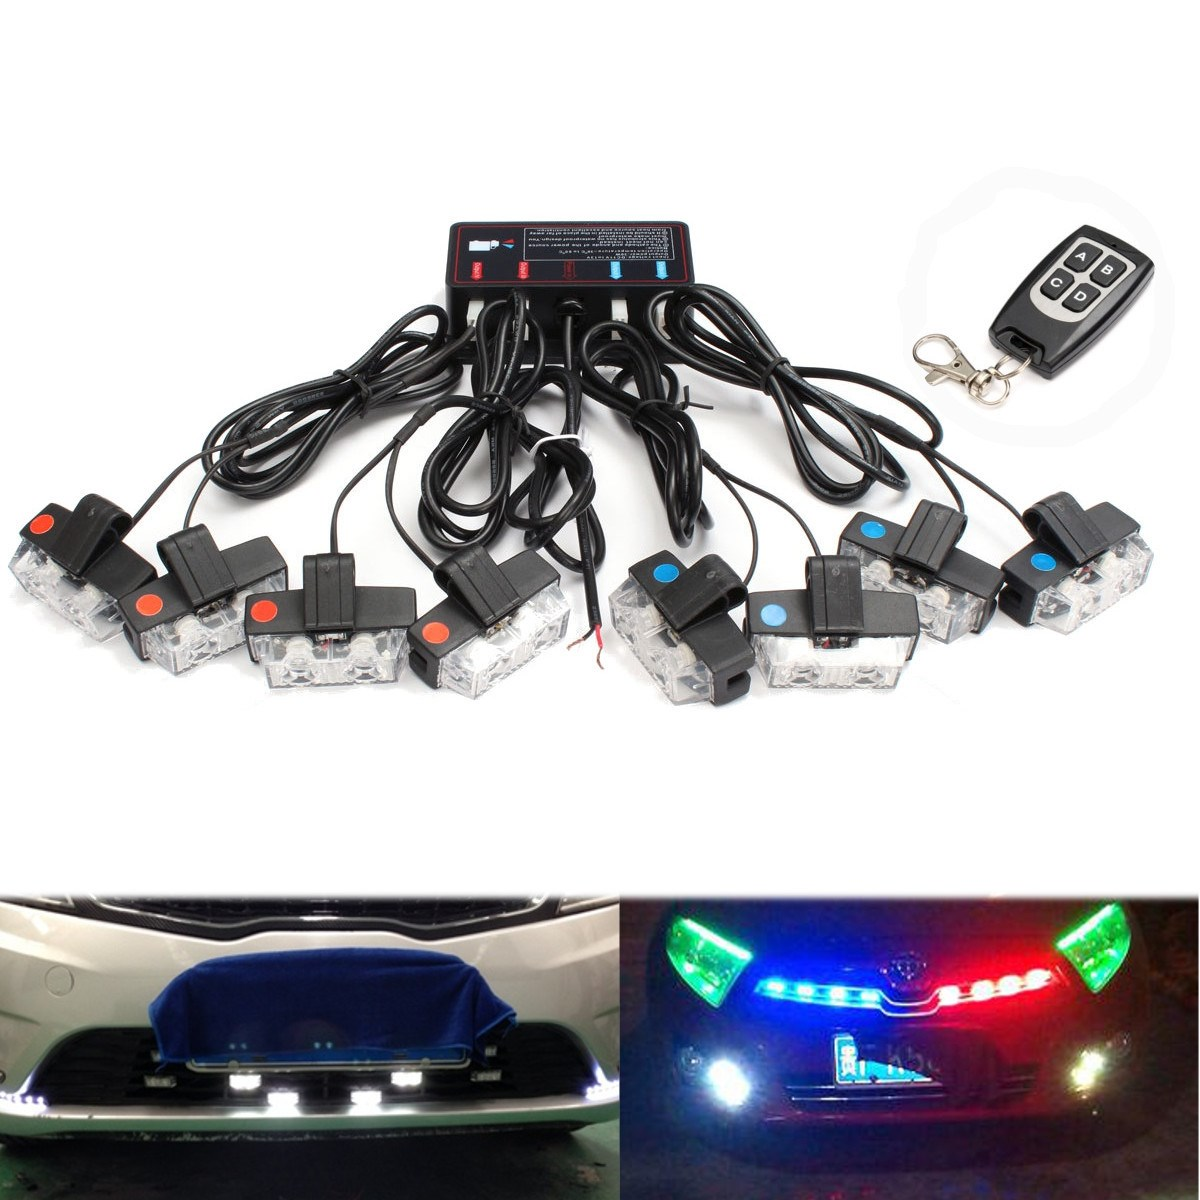 цена на 16 LEDs Flash Emergency Flashing Warning Strobe Light 12V LED Car Front Grille Deck Strobe For Police Dash Lights Red&Blue White